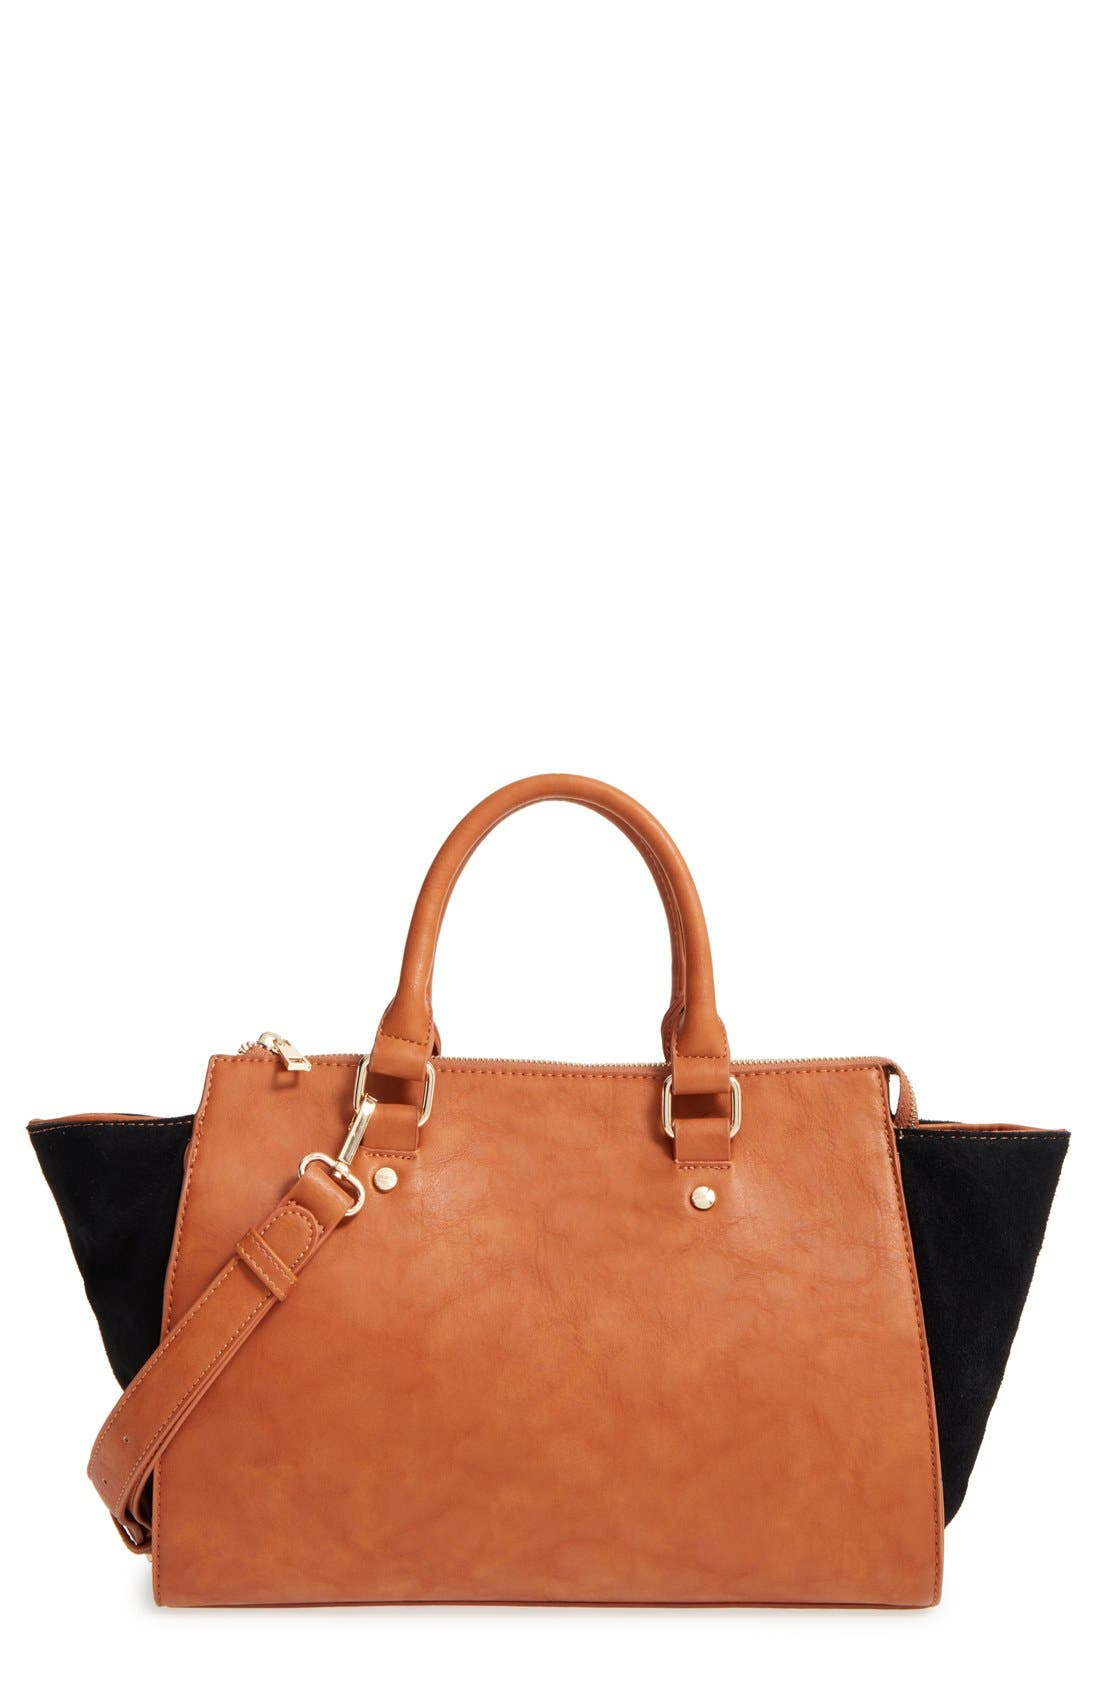 Alternate Image 1 Selected - Sole Society 'Bridgette' Winged Faux Leather & Faux Suede Satchel